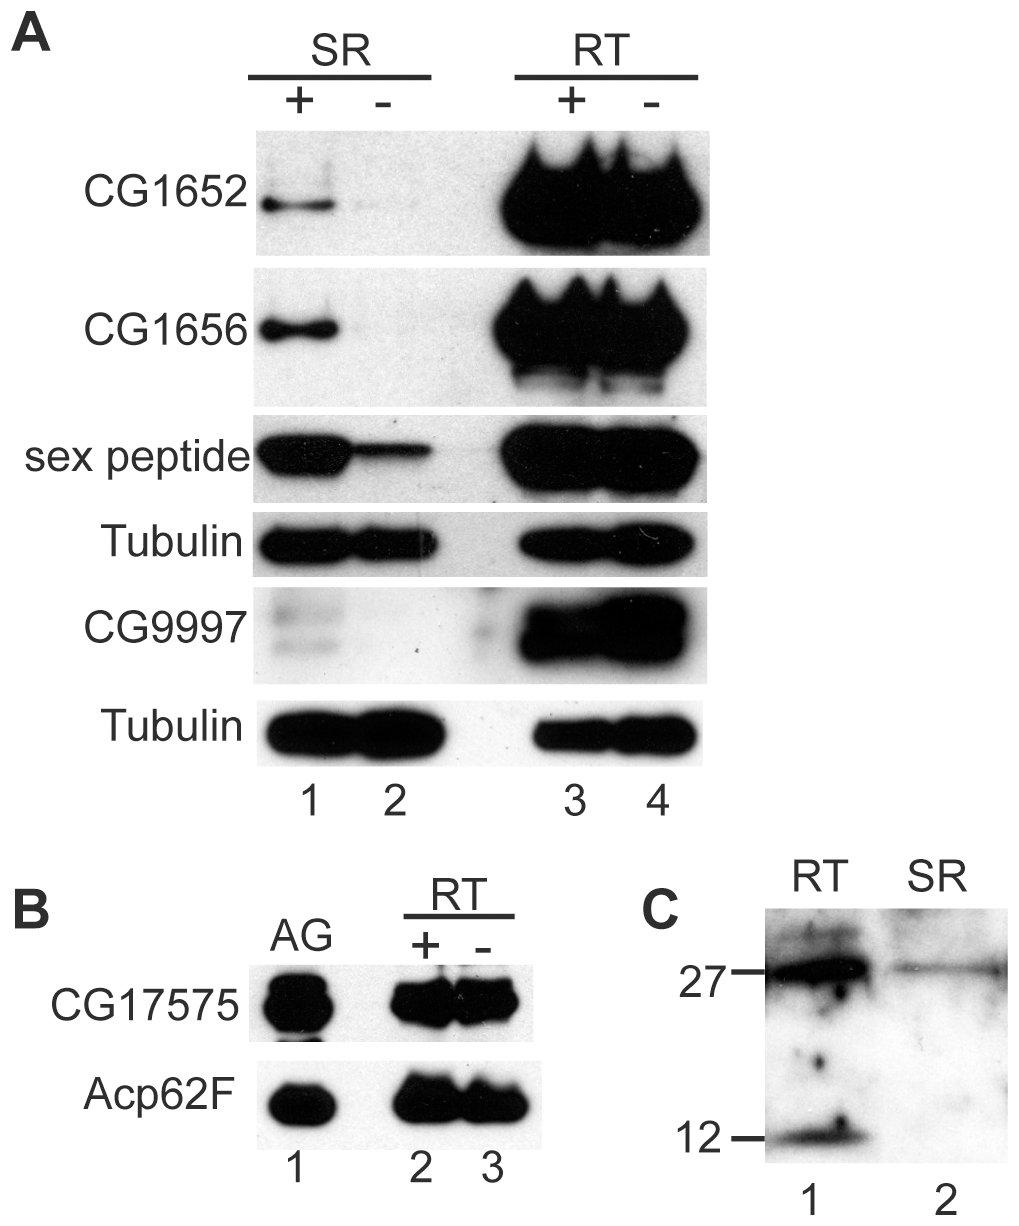 LTR proteins fail to accumulate in the seminal receptacle in the absence of seminase.